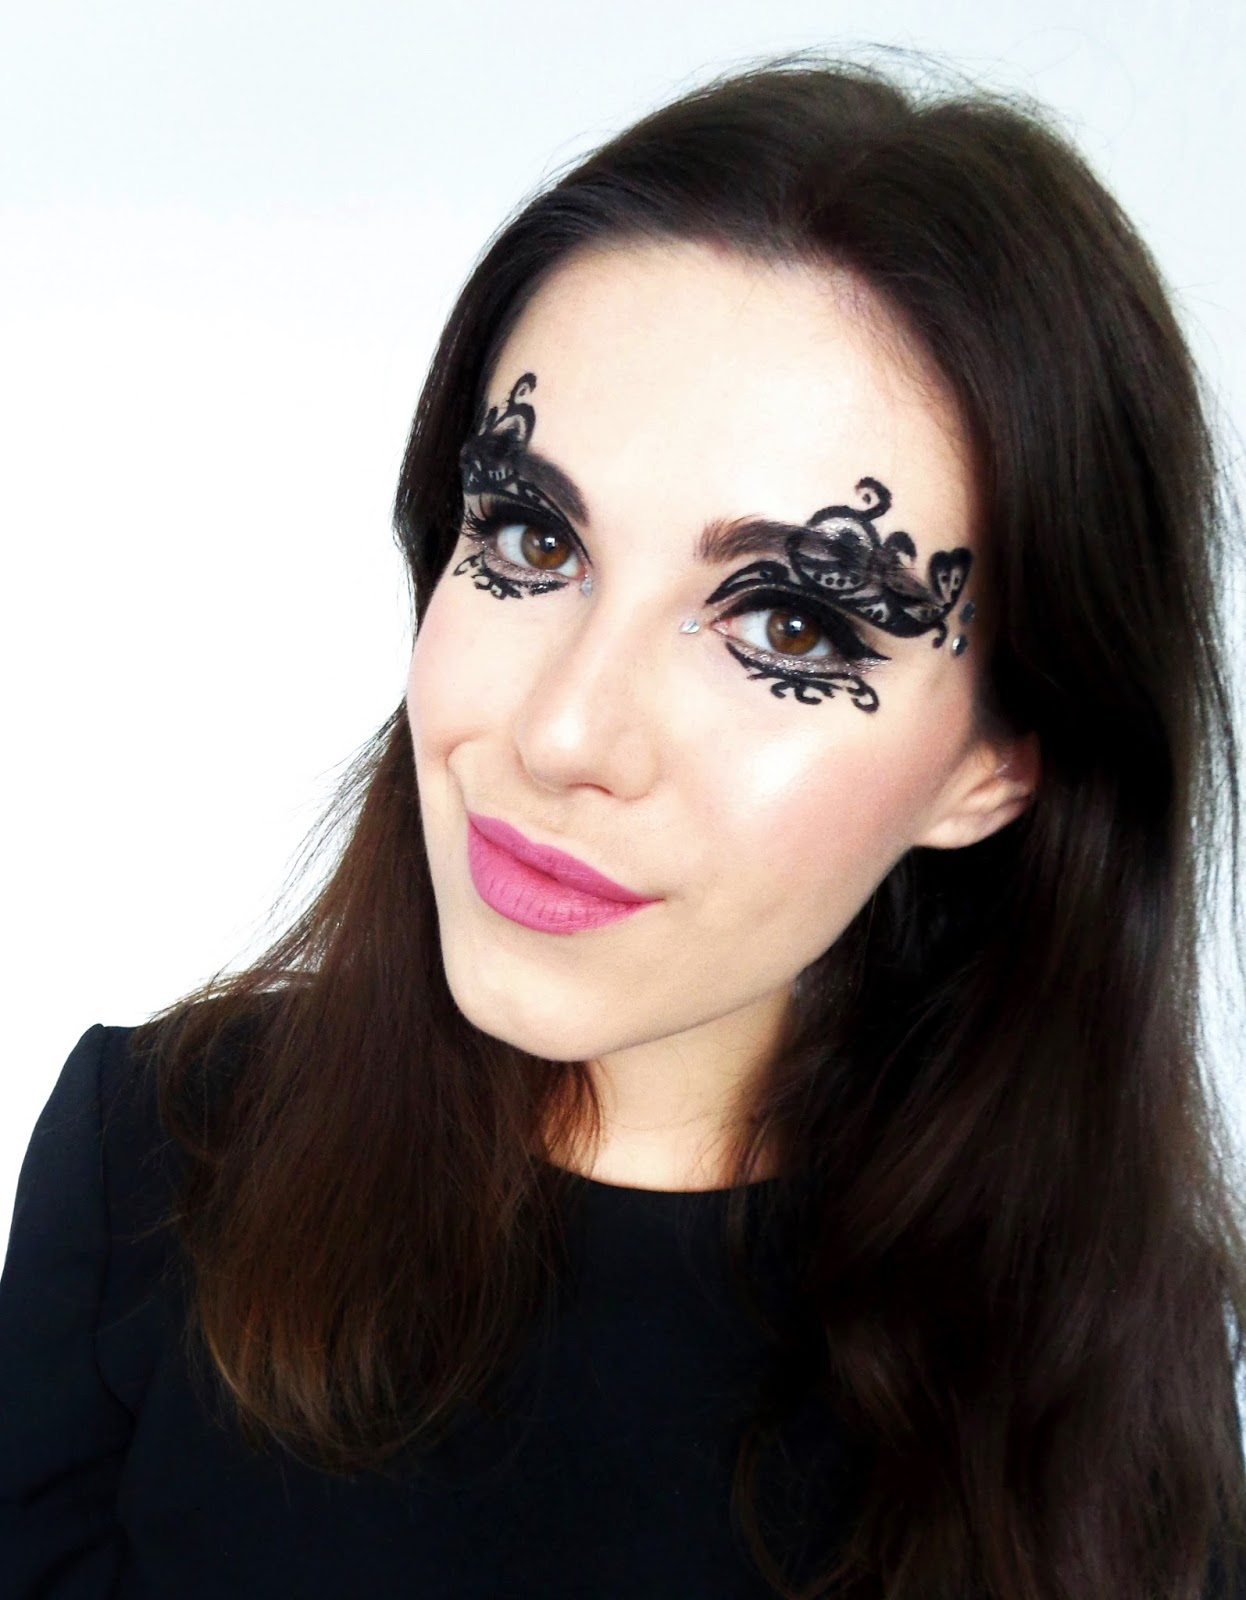 Maquillage loup carnaval - Maquillage loup facile ...